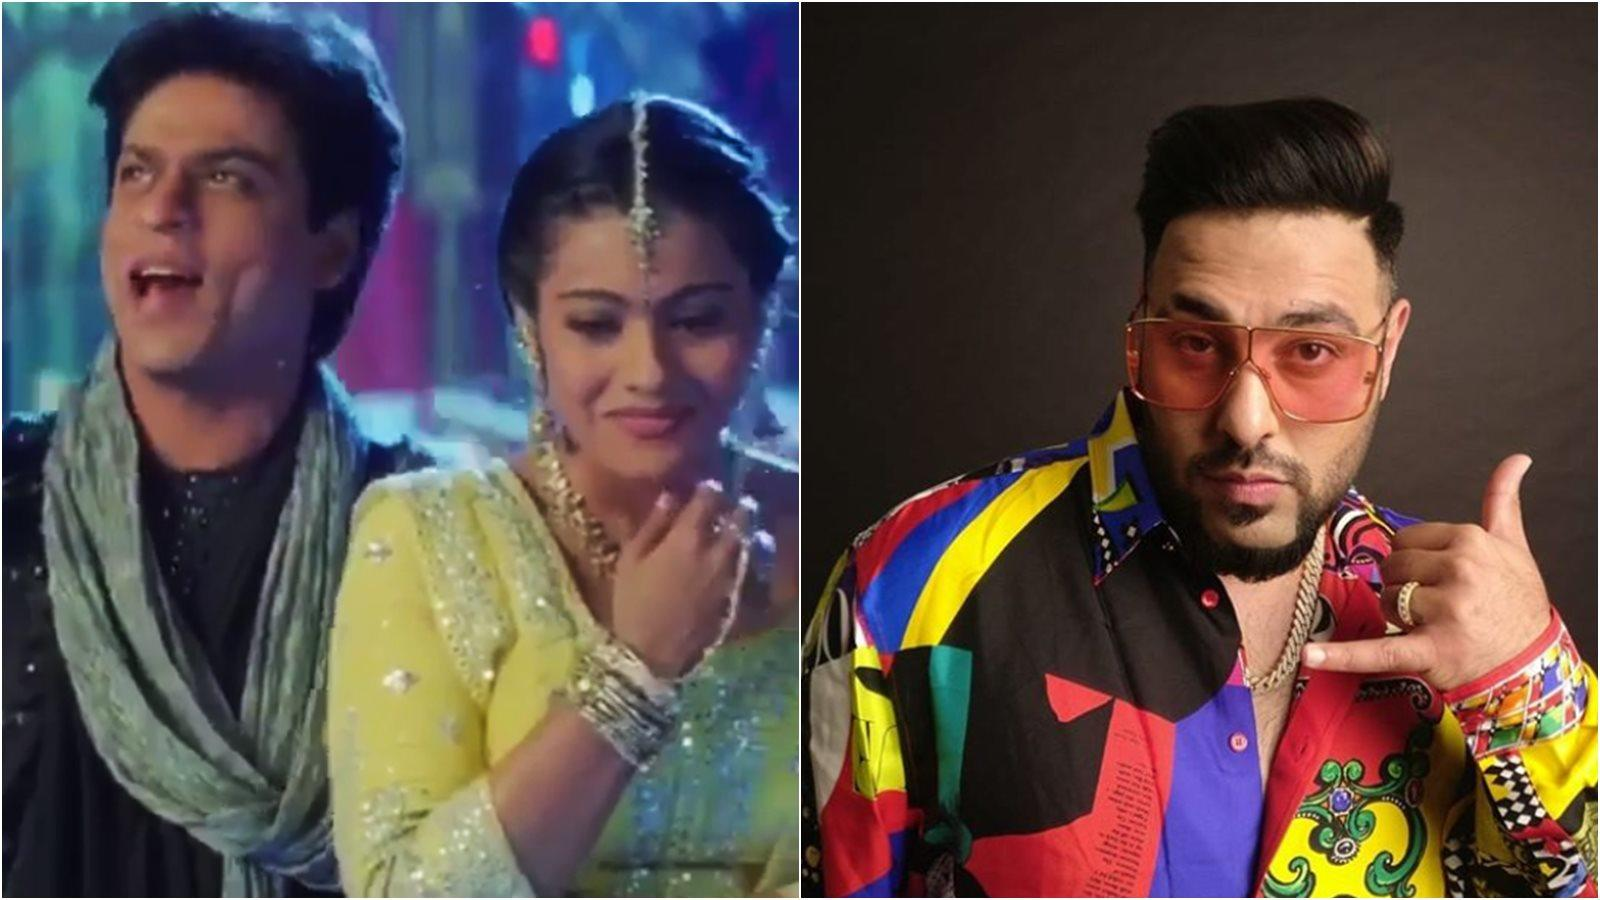 This video of Shah Rukh Khan and Kajol grooving to Badshah's new song 'Pagal' is hilarious!